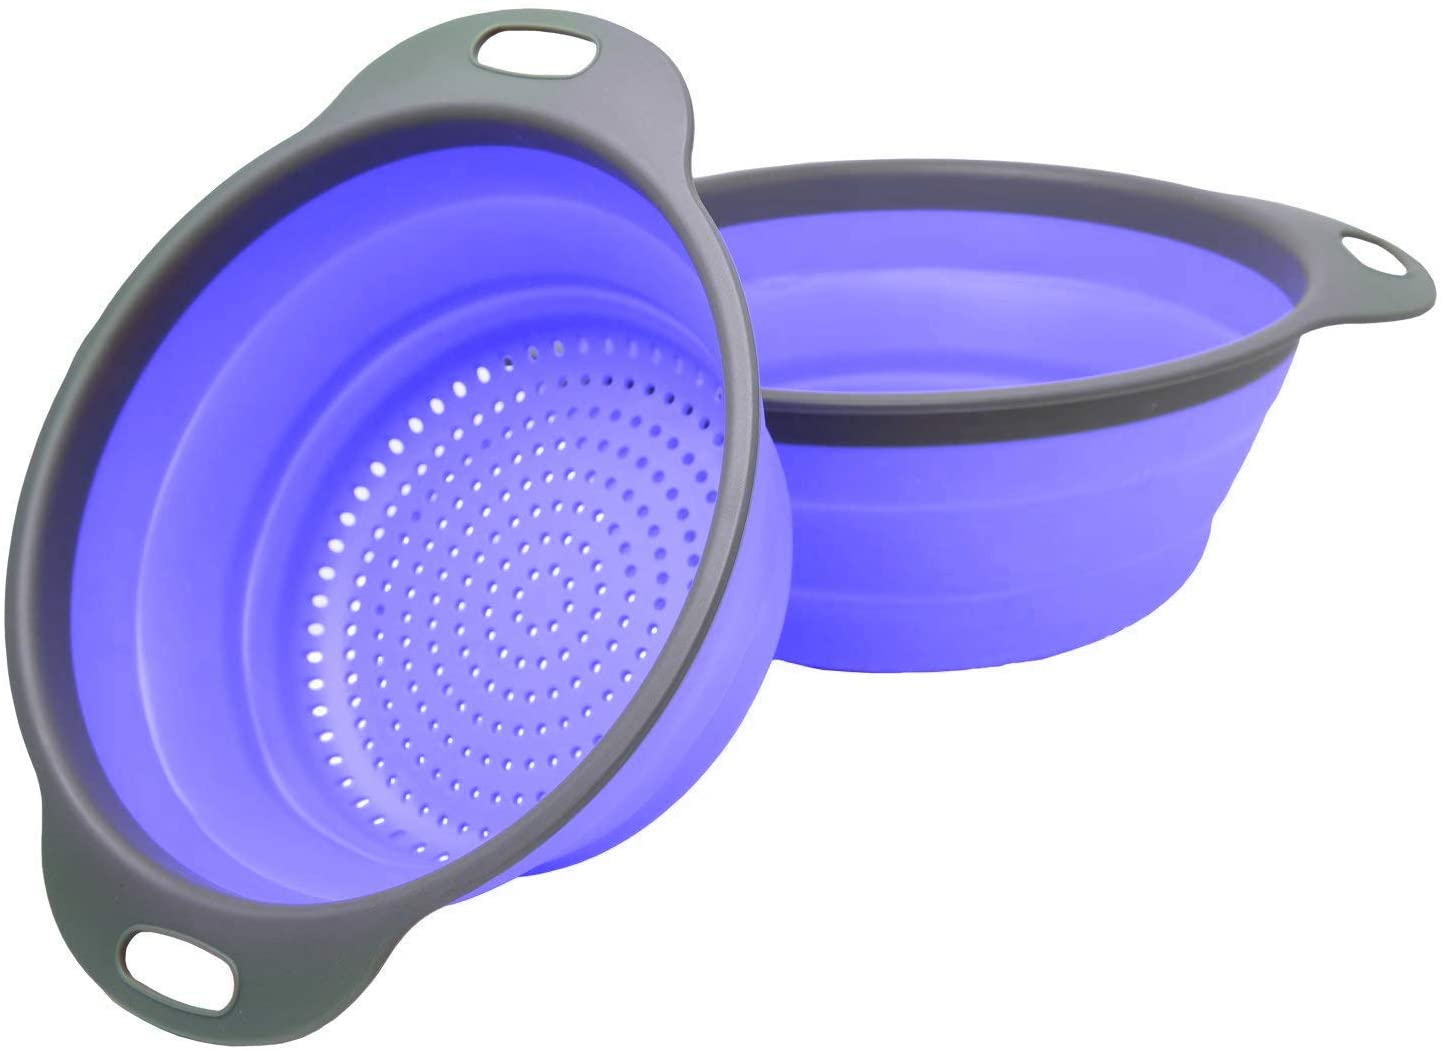 Comfify Collapsible Colanders Set